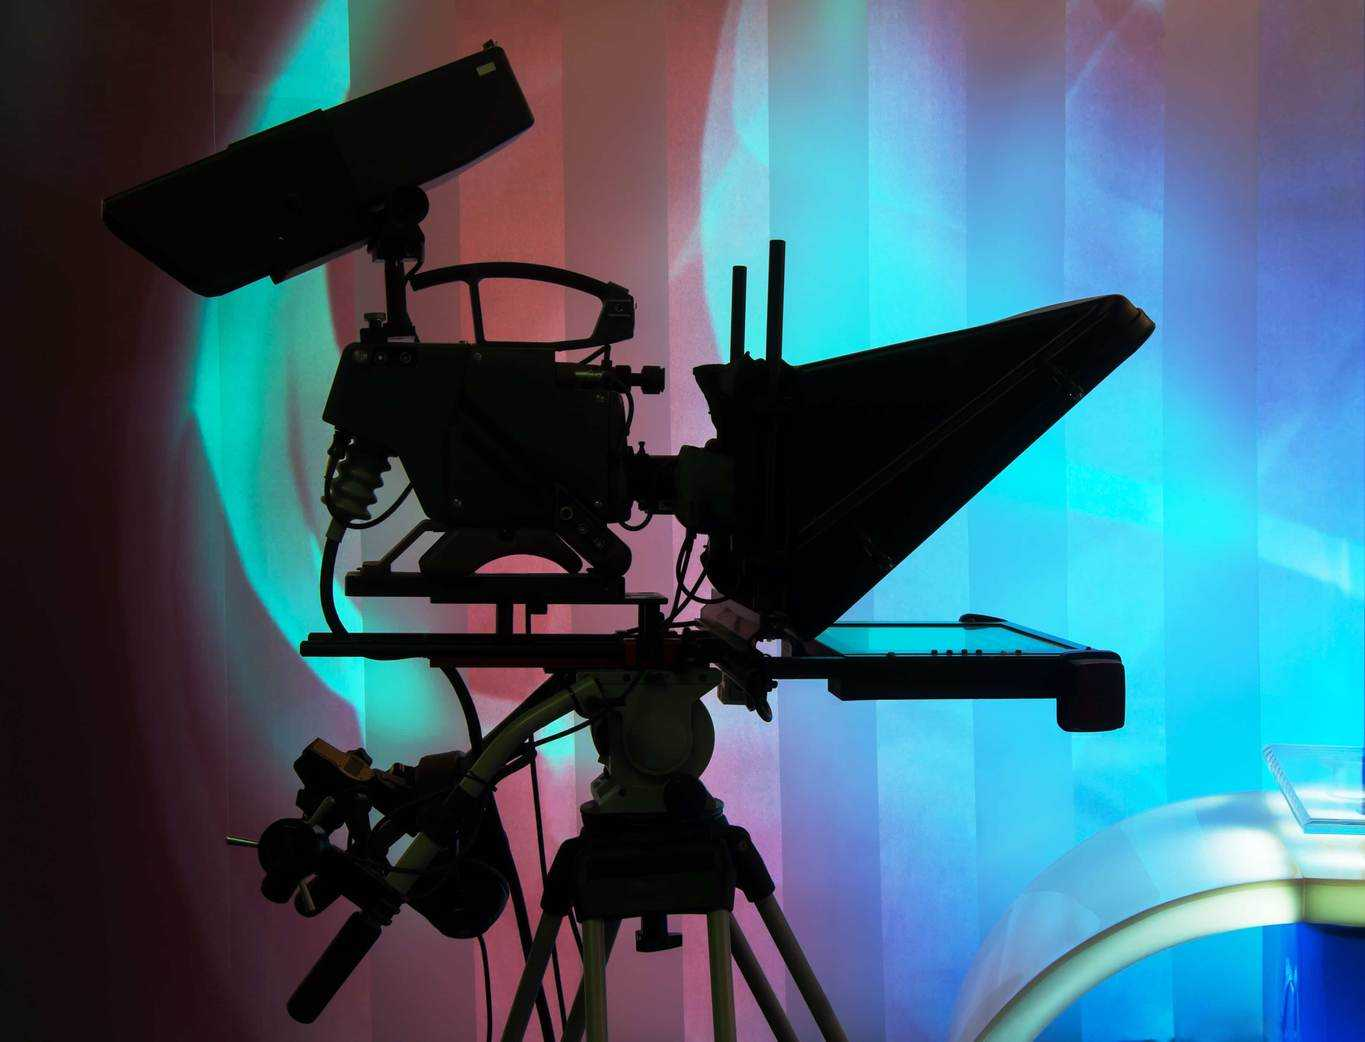 7 Features to Look For in Great Teleprompter Software 2